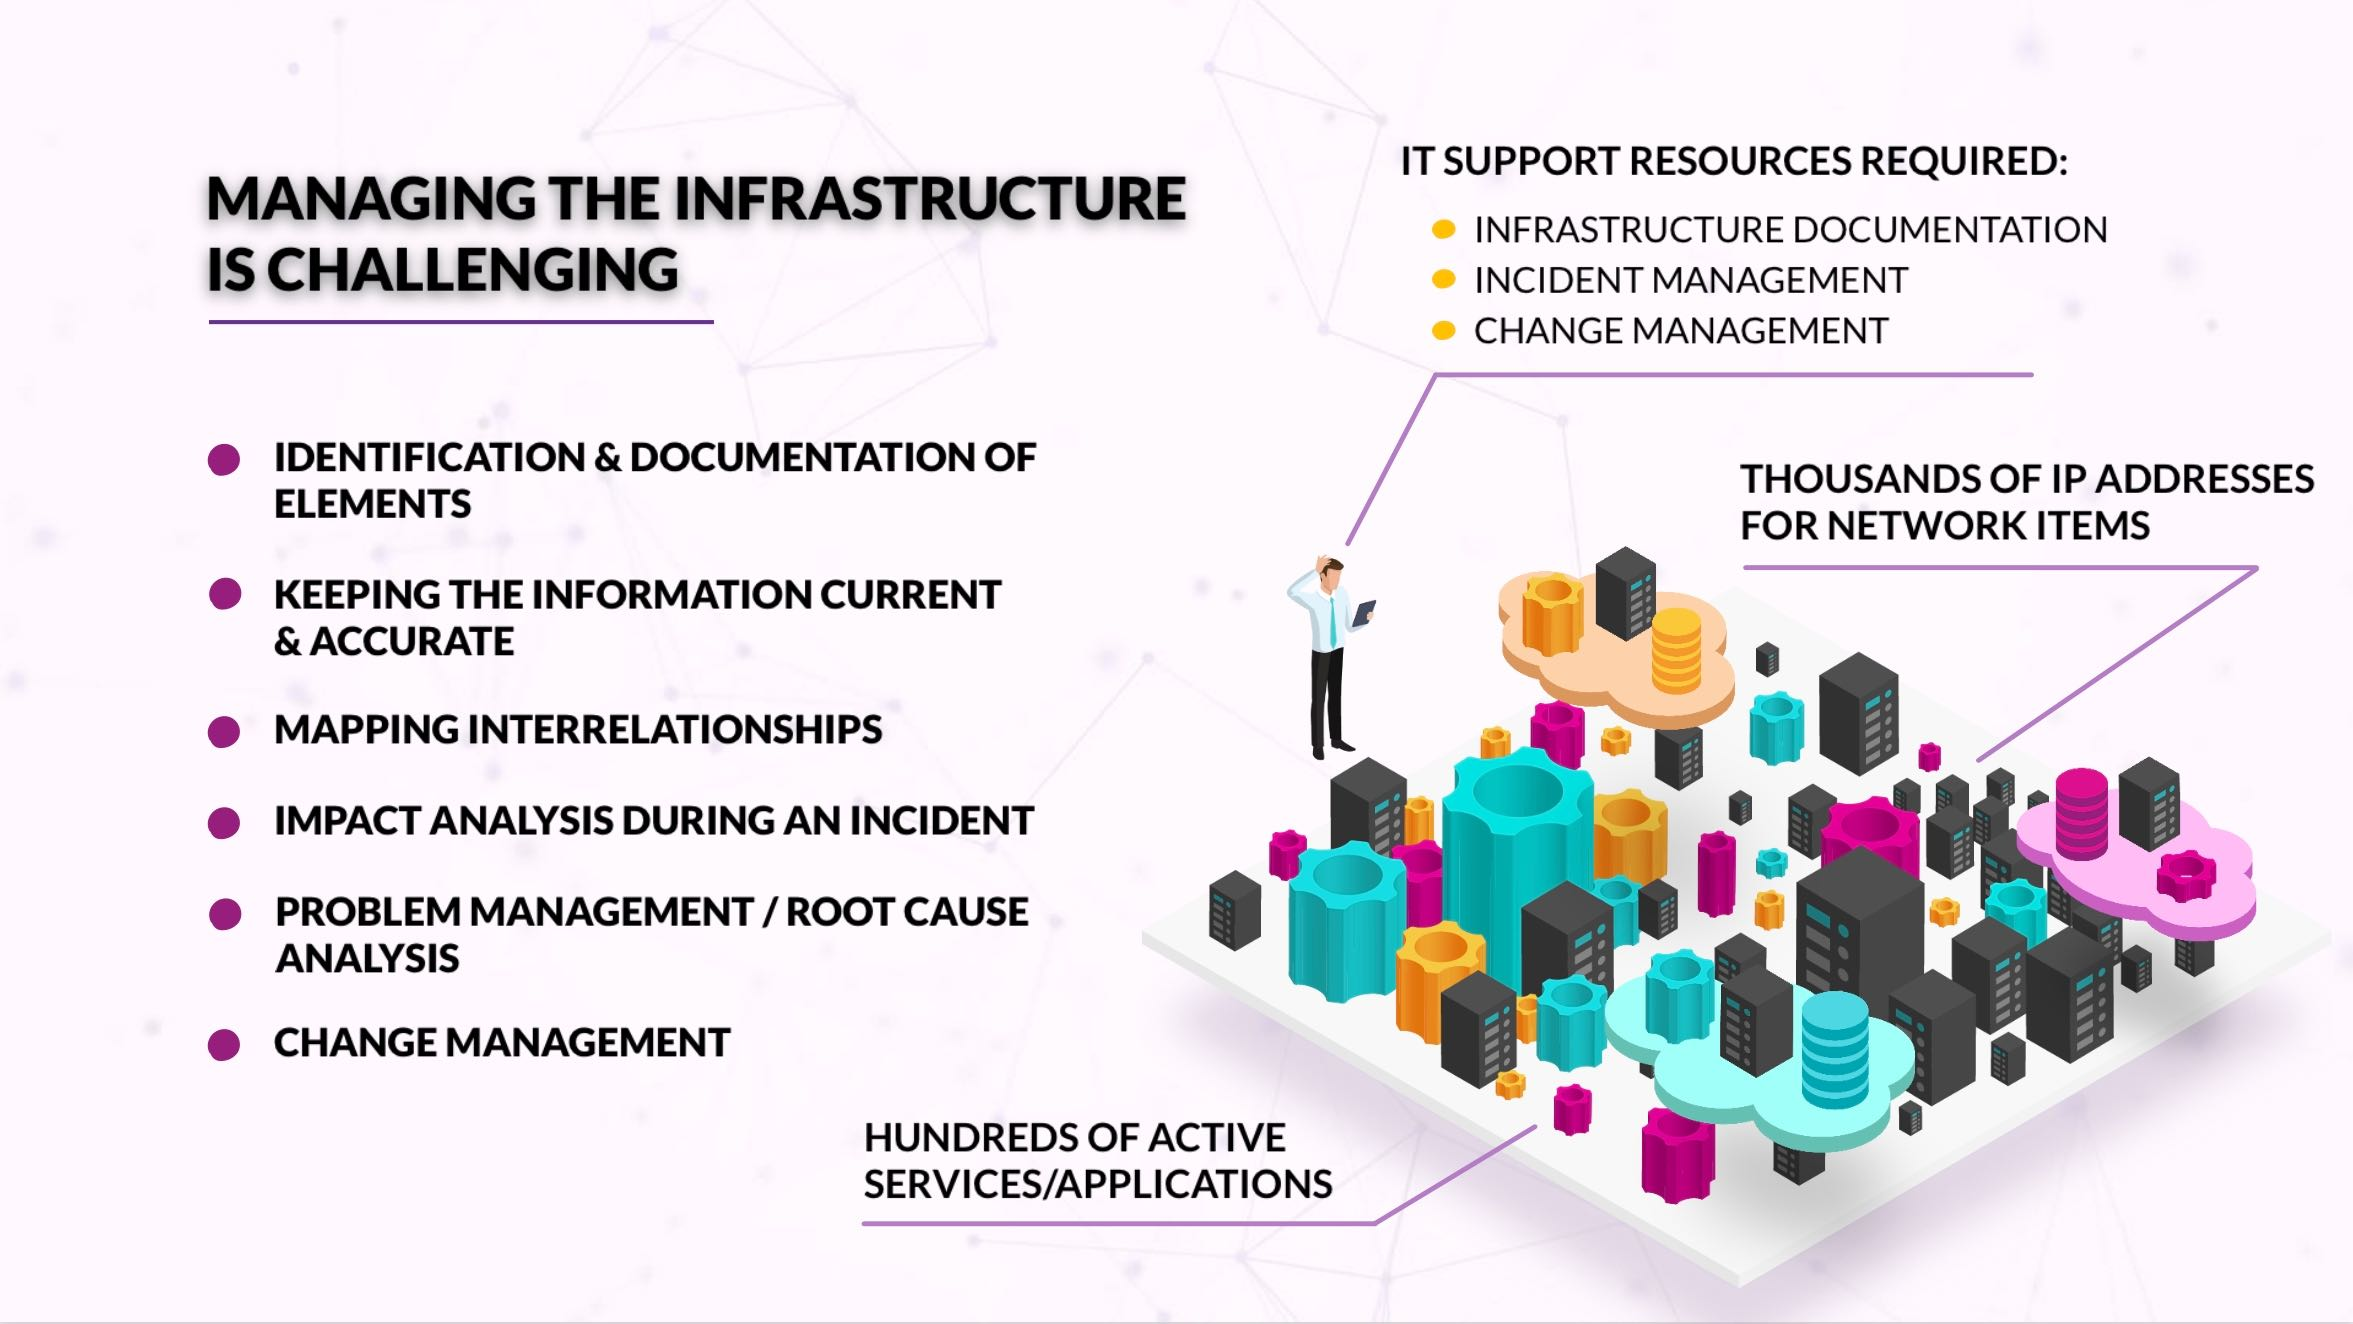 Managing the infrastructure is challenging